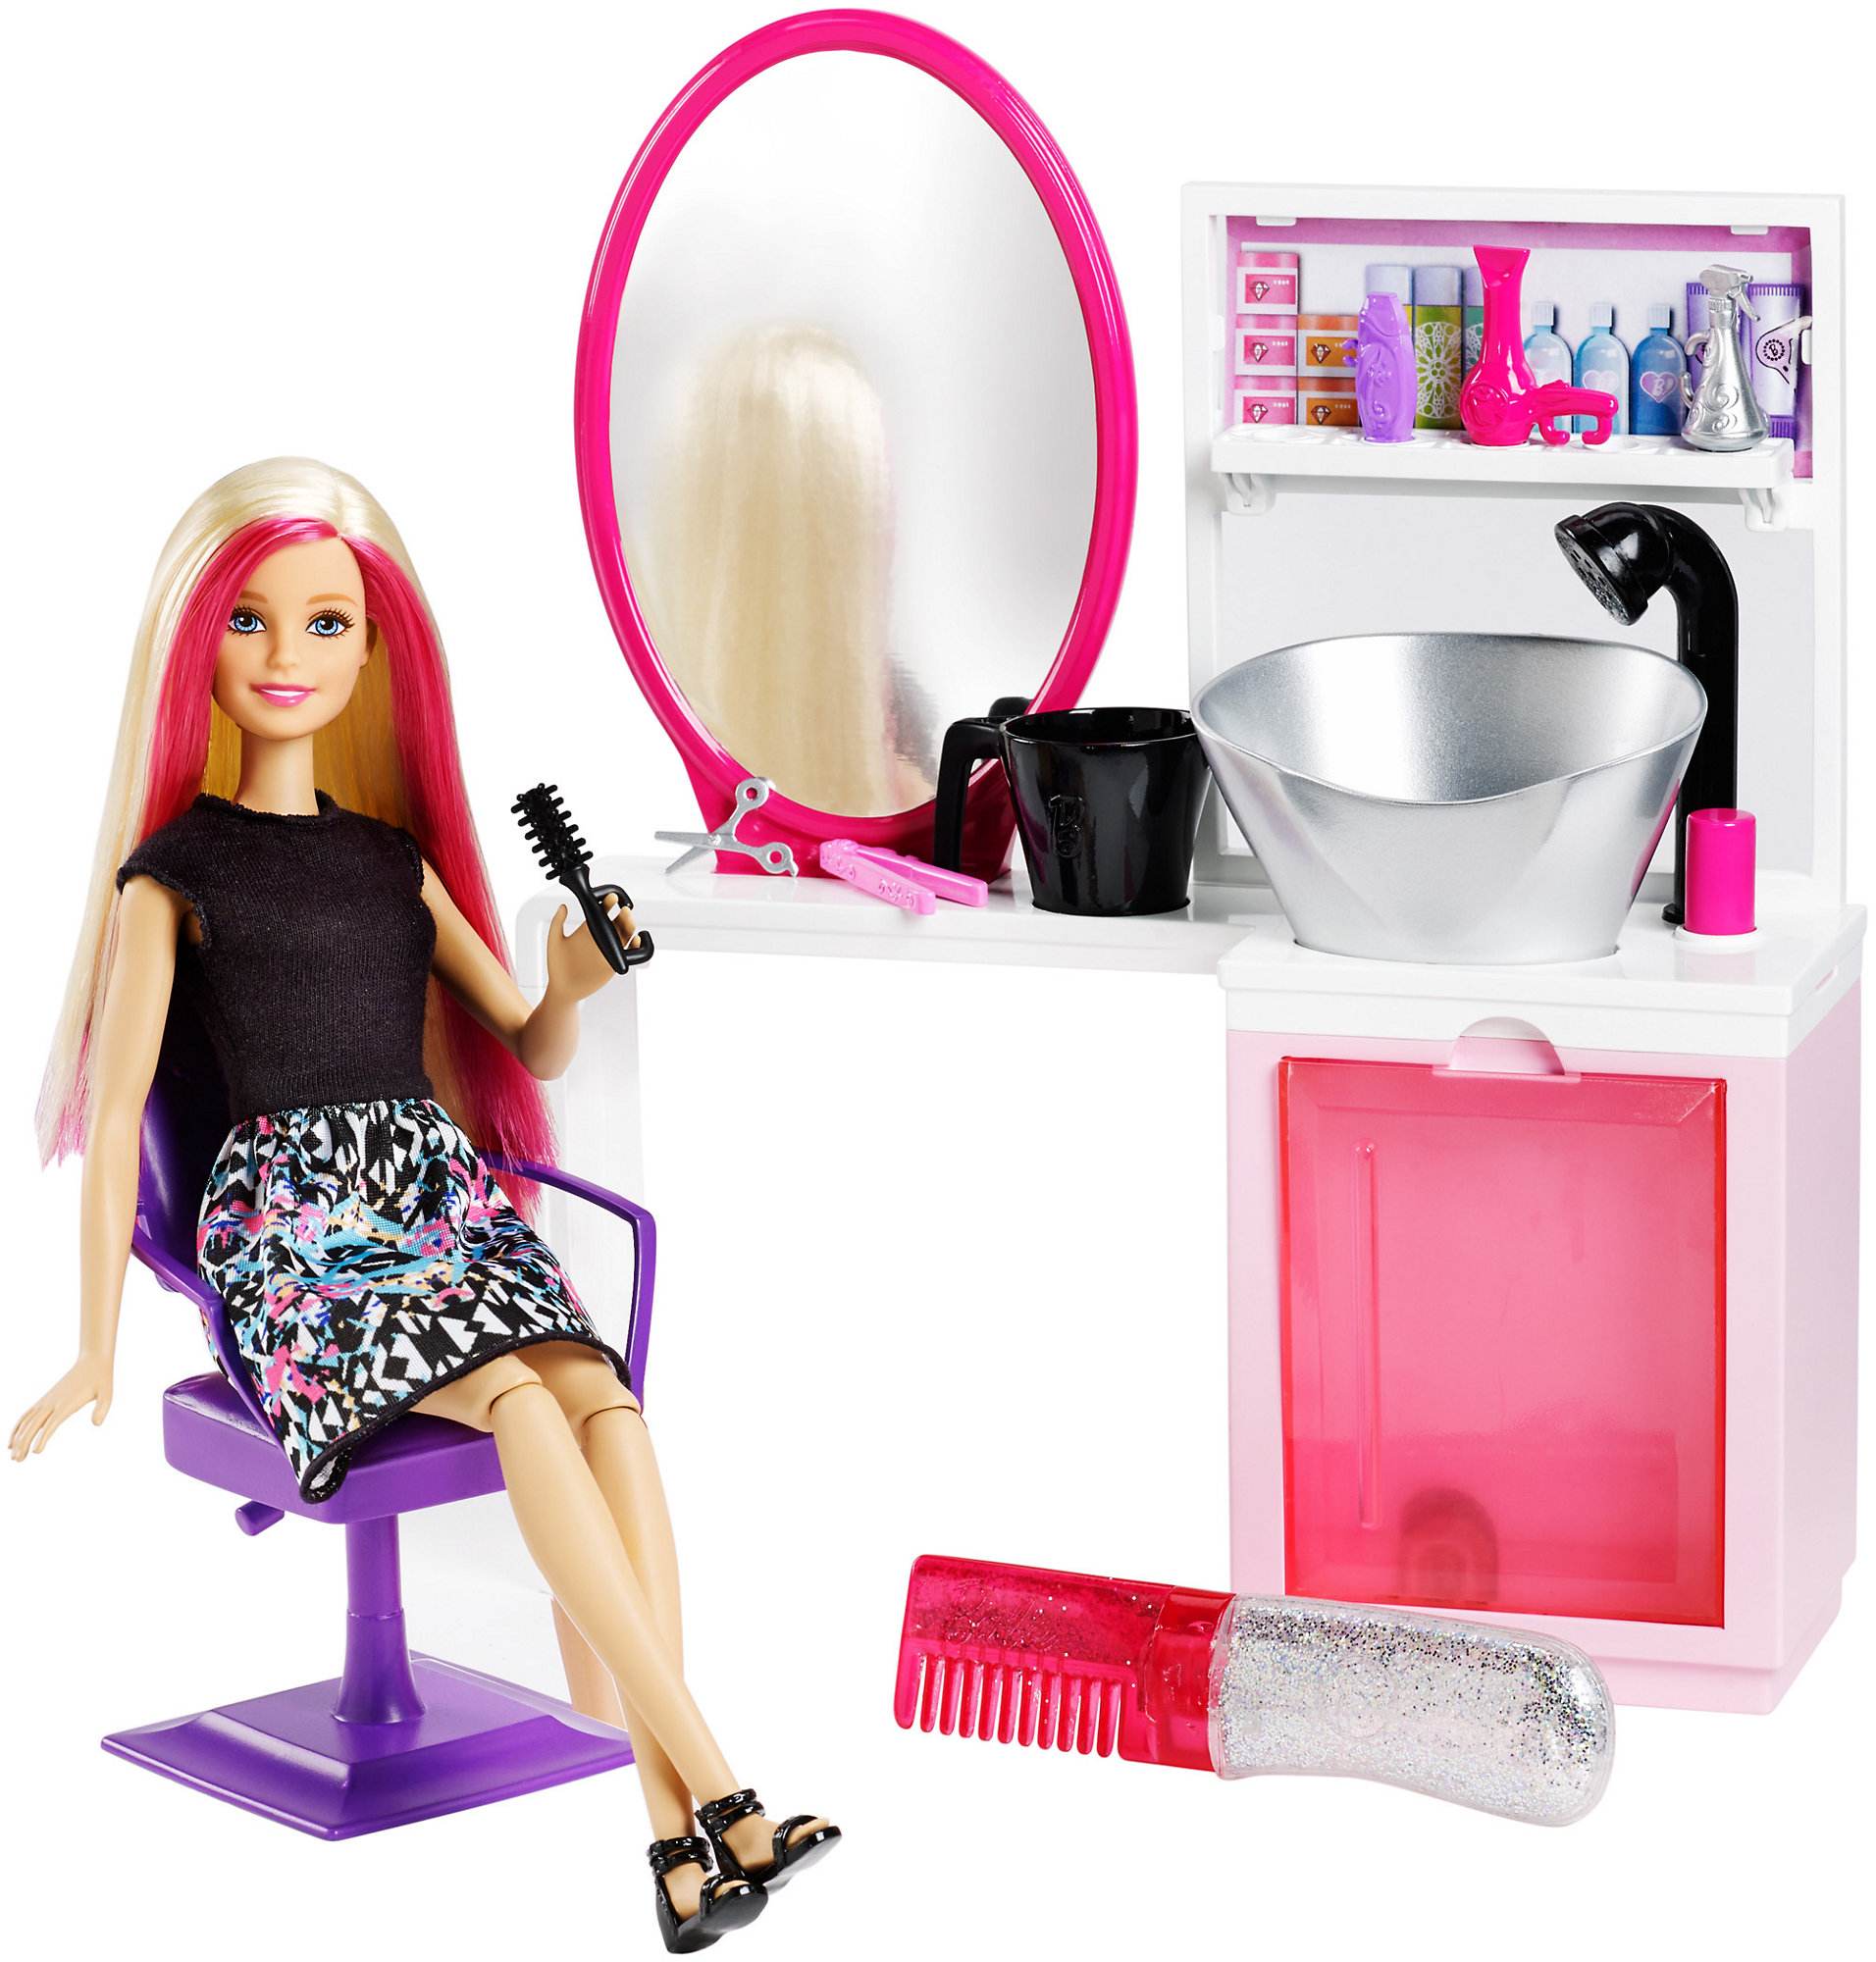 Barbie Sparkle Style Salon Doll & Playset - Blonde - Walmart.com